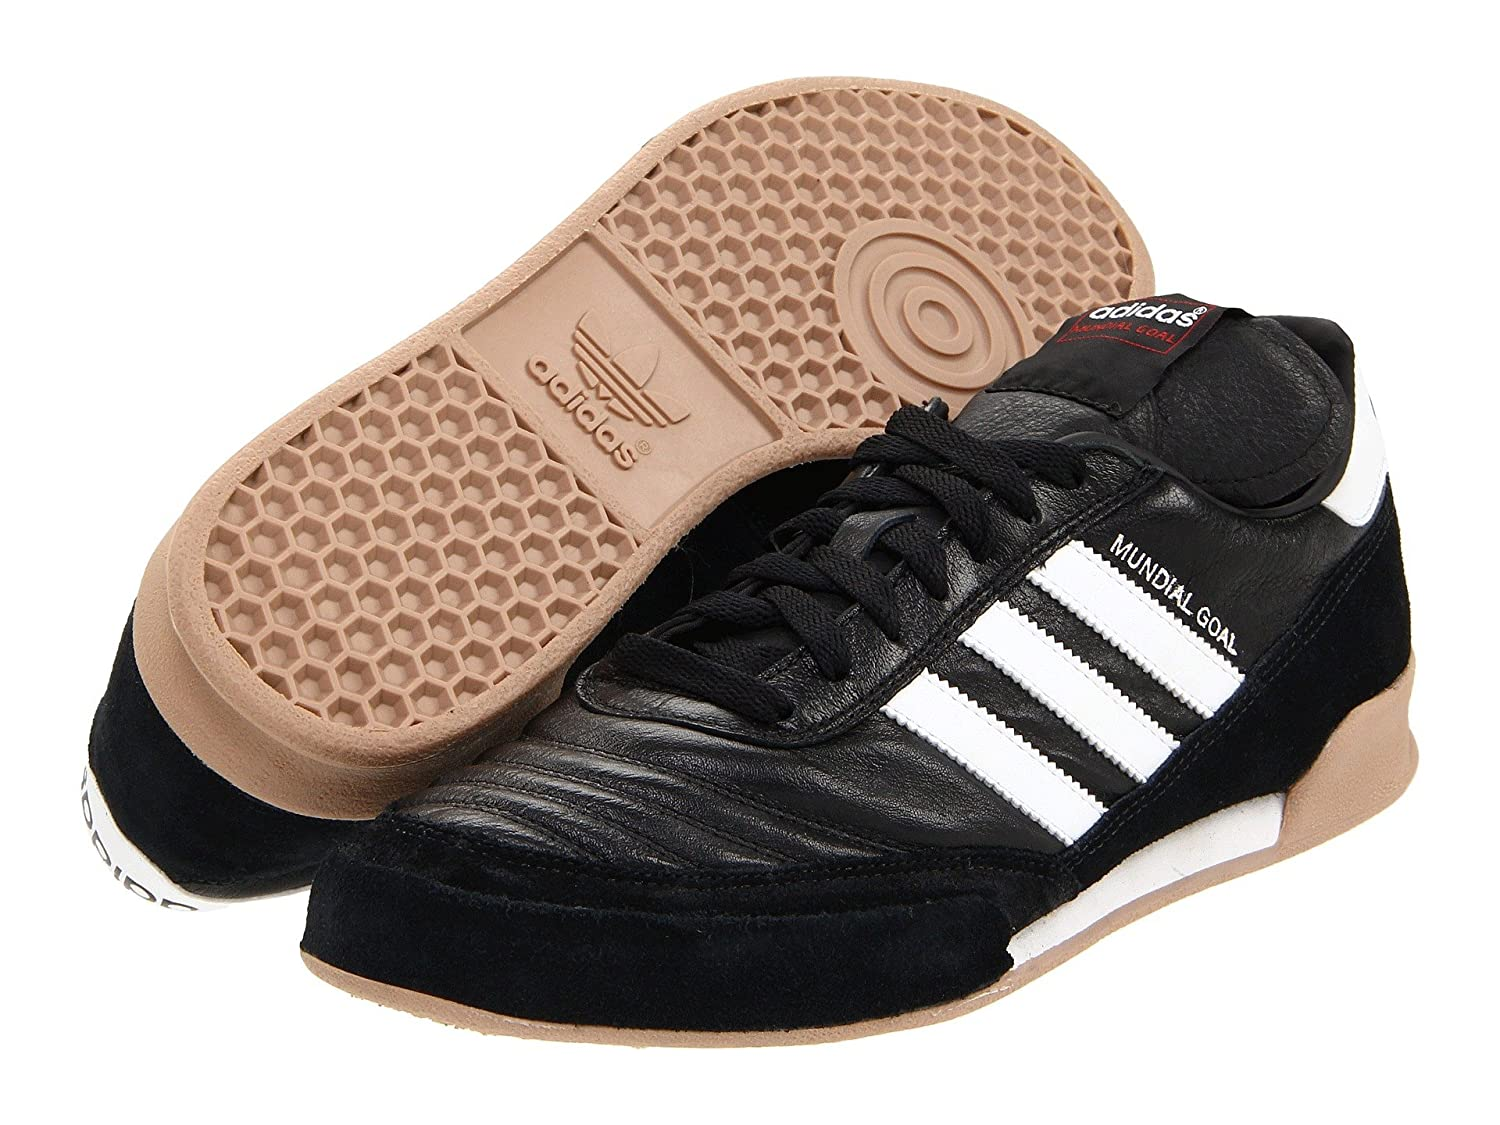 (アディダス) adidas メンズサッカーシューズ靴 Mundial Goal Black/Running White 7.5 (25.5cm) D Medium B07BQHJPF3